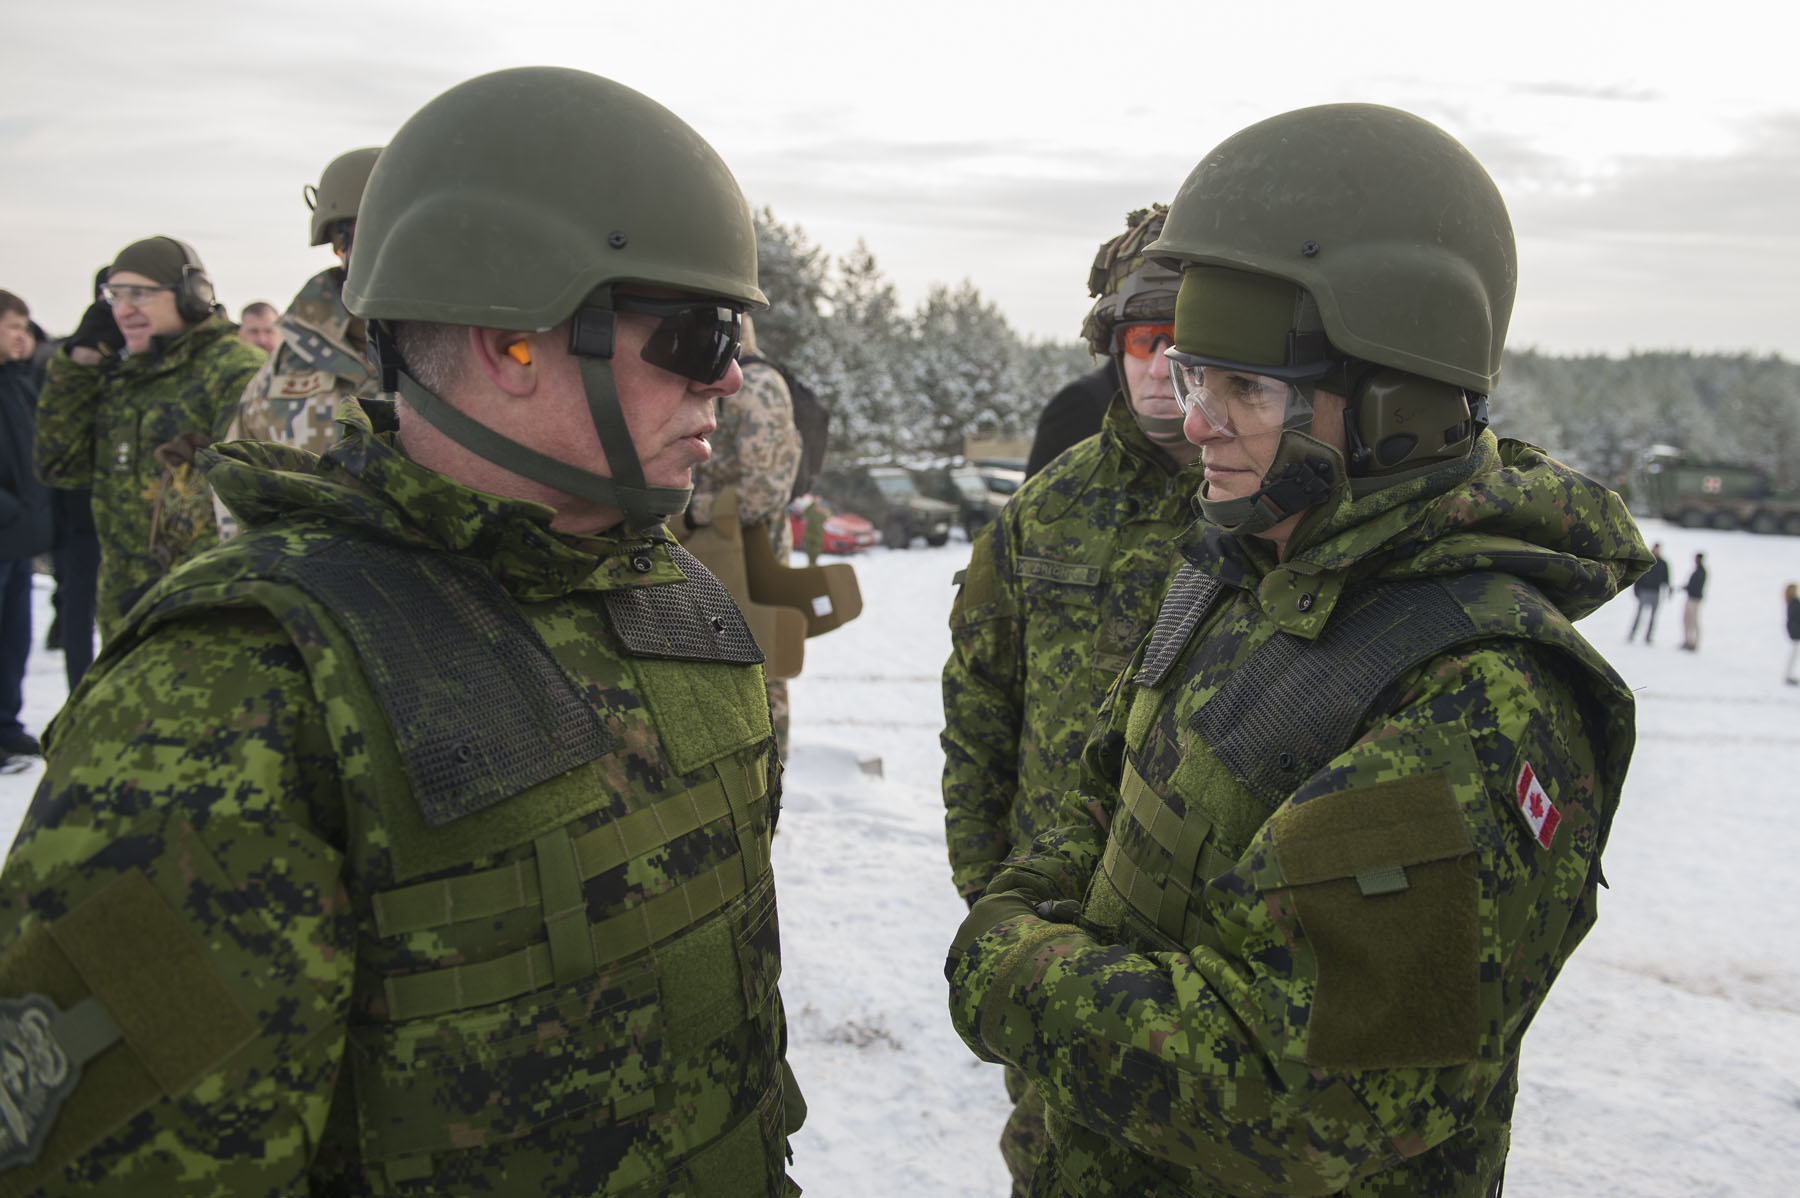 During this visit, Her Excellency learned about Operation REASSURANCE.